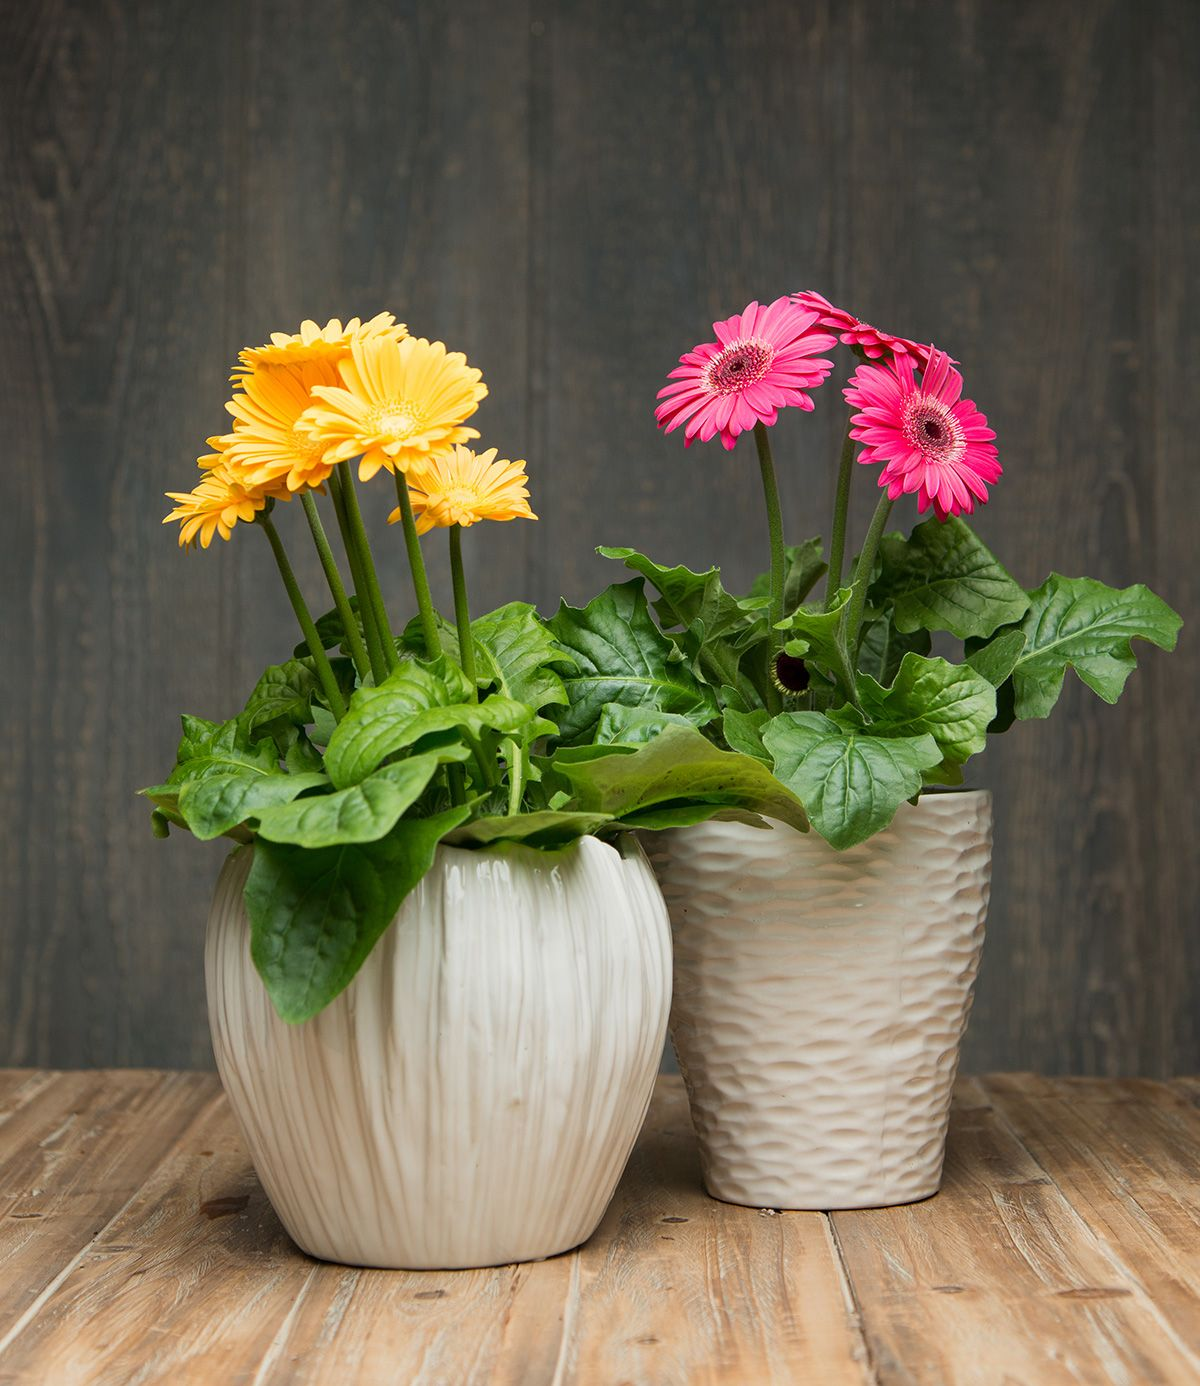 Gerbera Daisies Are Like Little Pots Of Sunshine They Come In Several Colors And Are One Of The Best Plants For Cleanin Plants Best Plants For Bedroom Gerbera